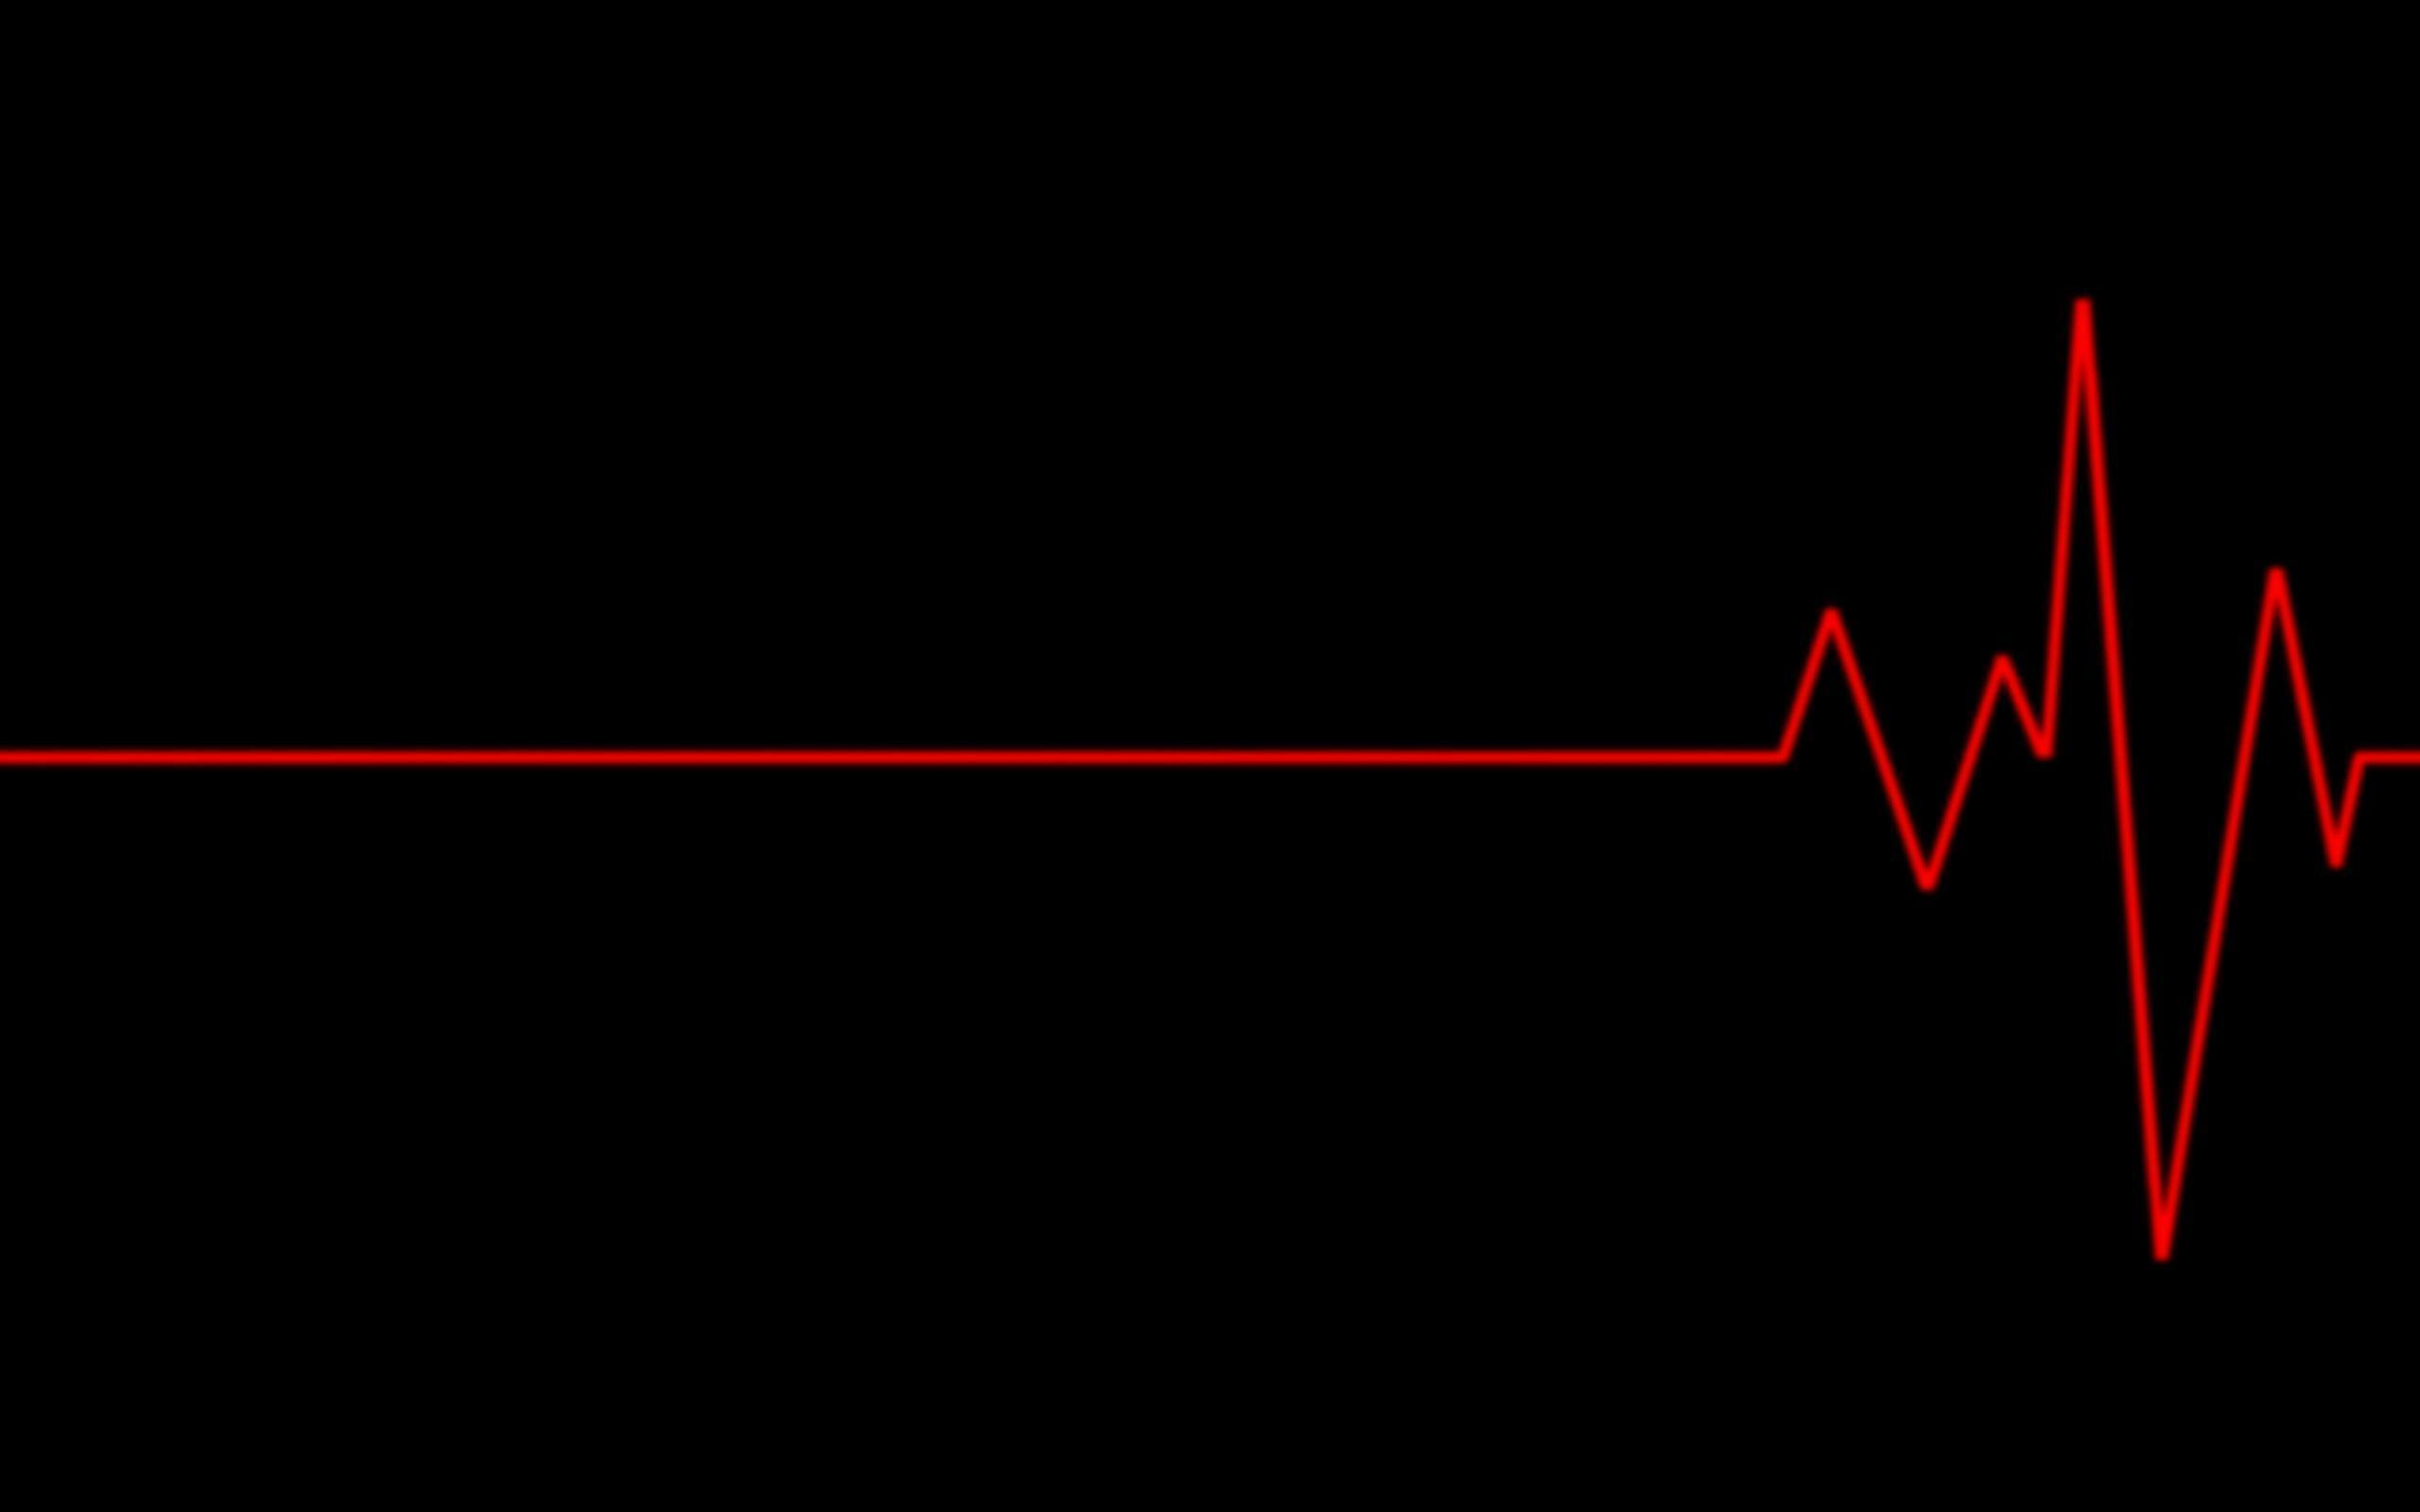 Heartbeat Line Art : Heartbeat wallpapers wallpaper cave